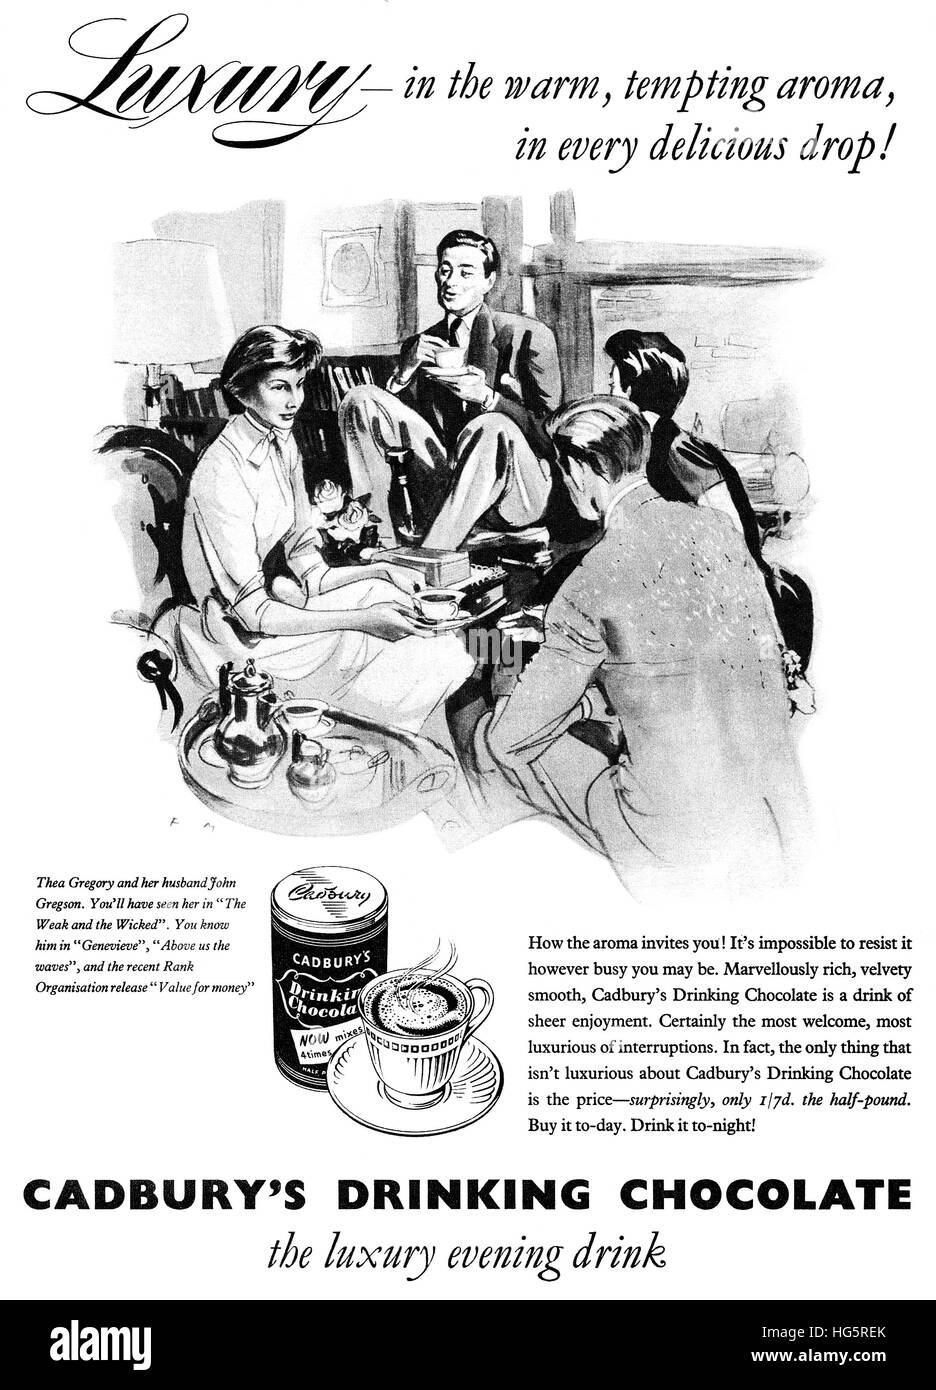 1956 British advertisement for Cadbury's Drinking Chocolate illustrated by Francis Marshall - Stock Image